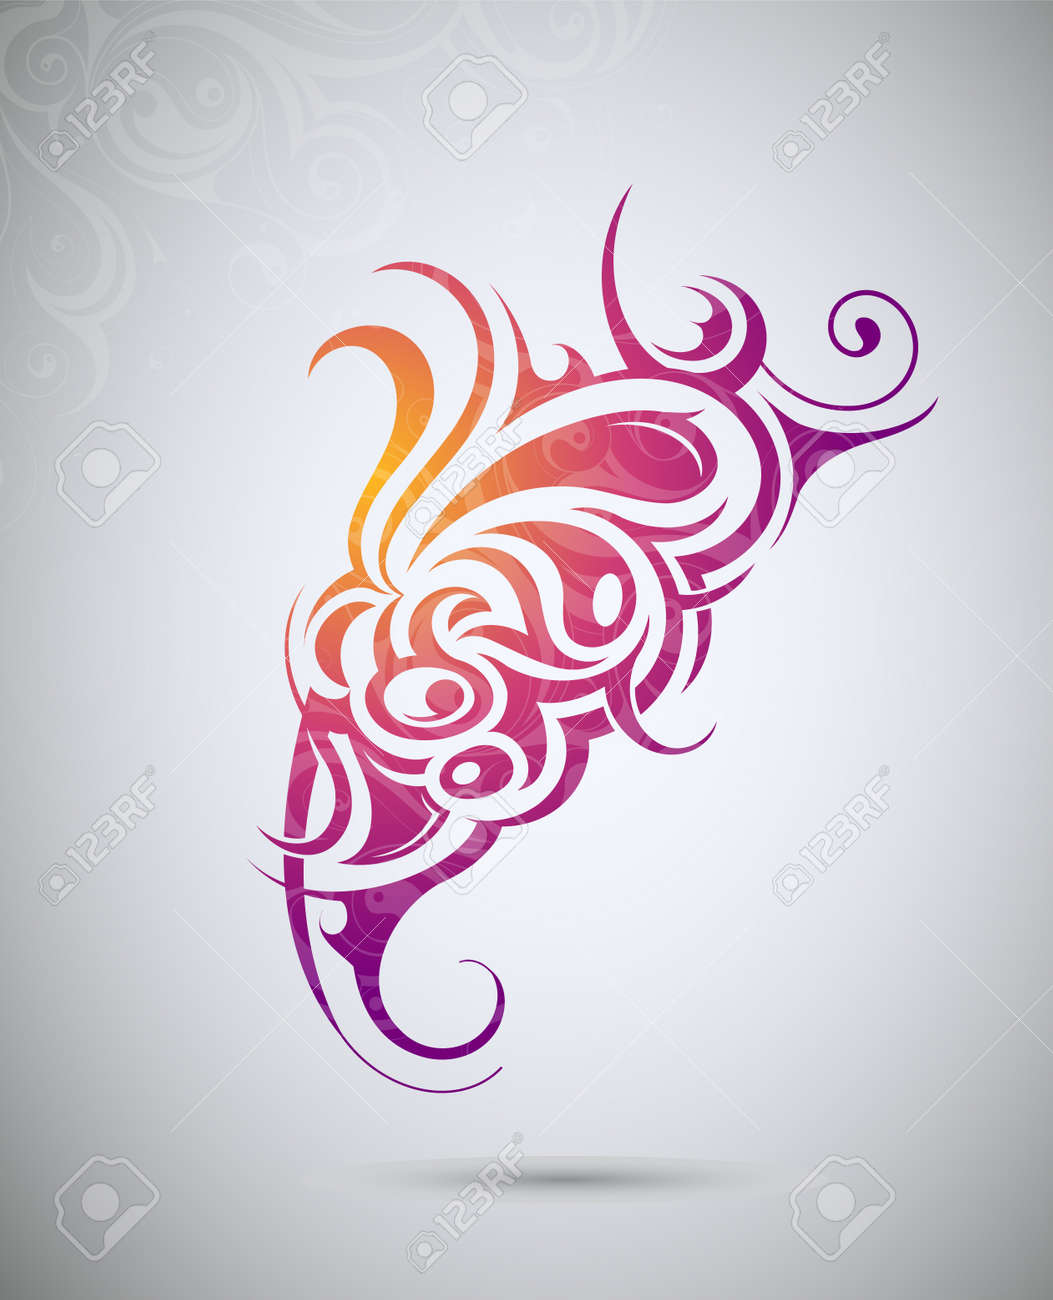 Decorative tattoo shape with floral elements - 17795382